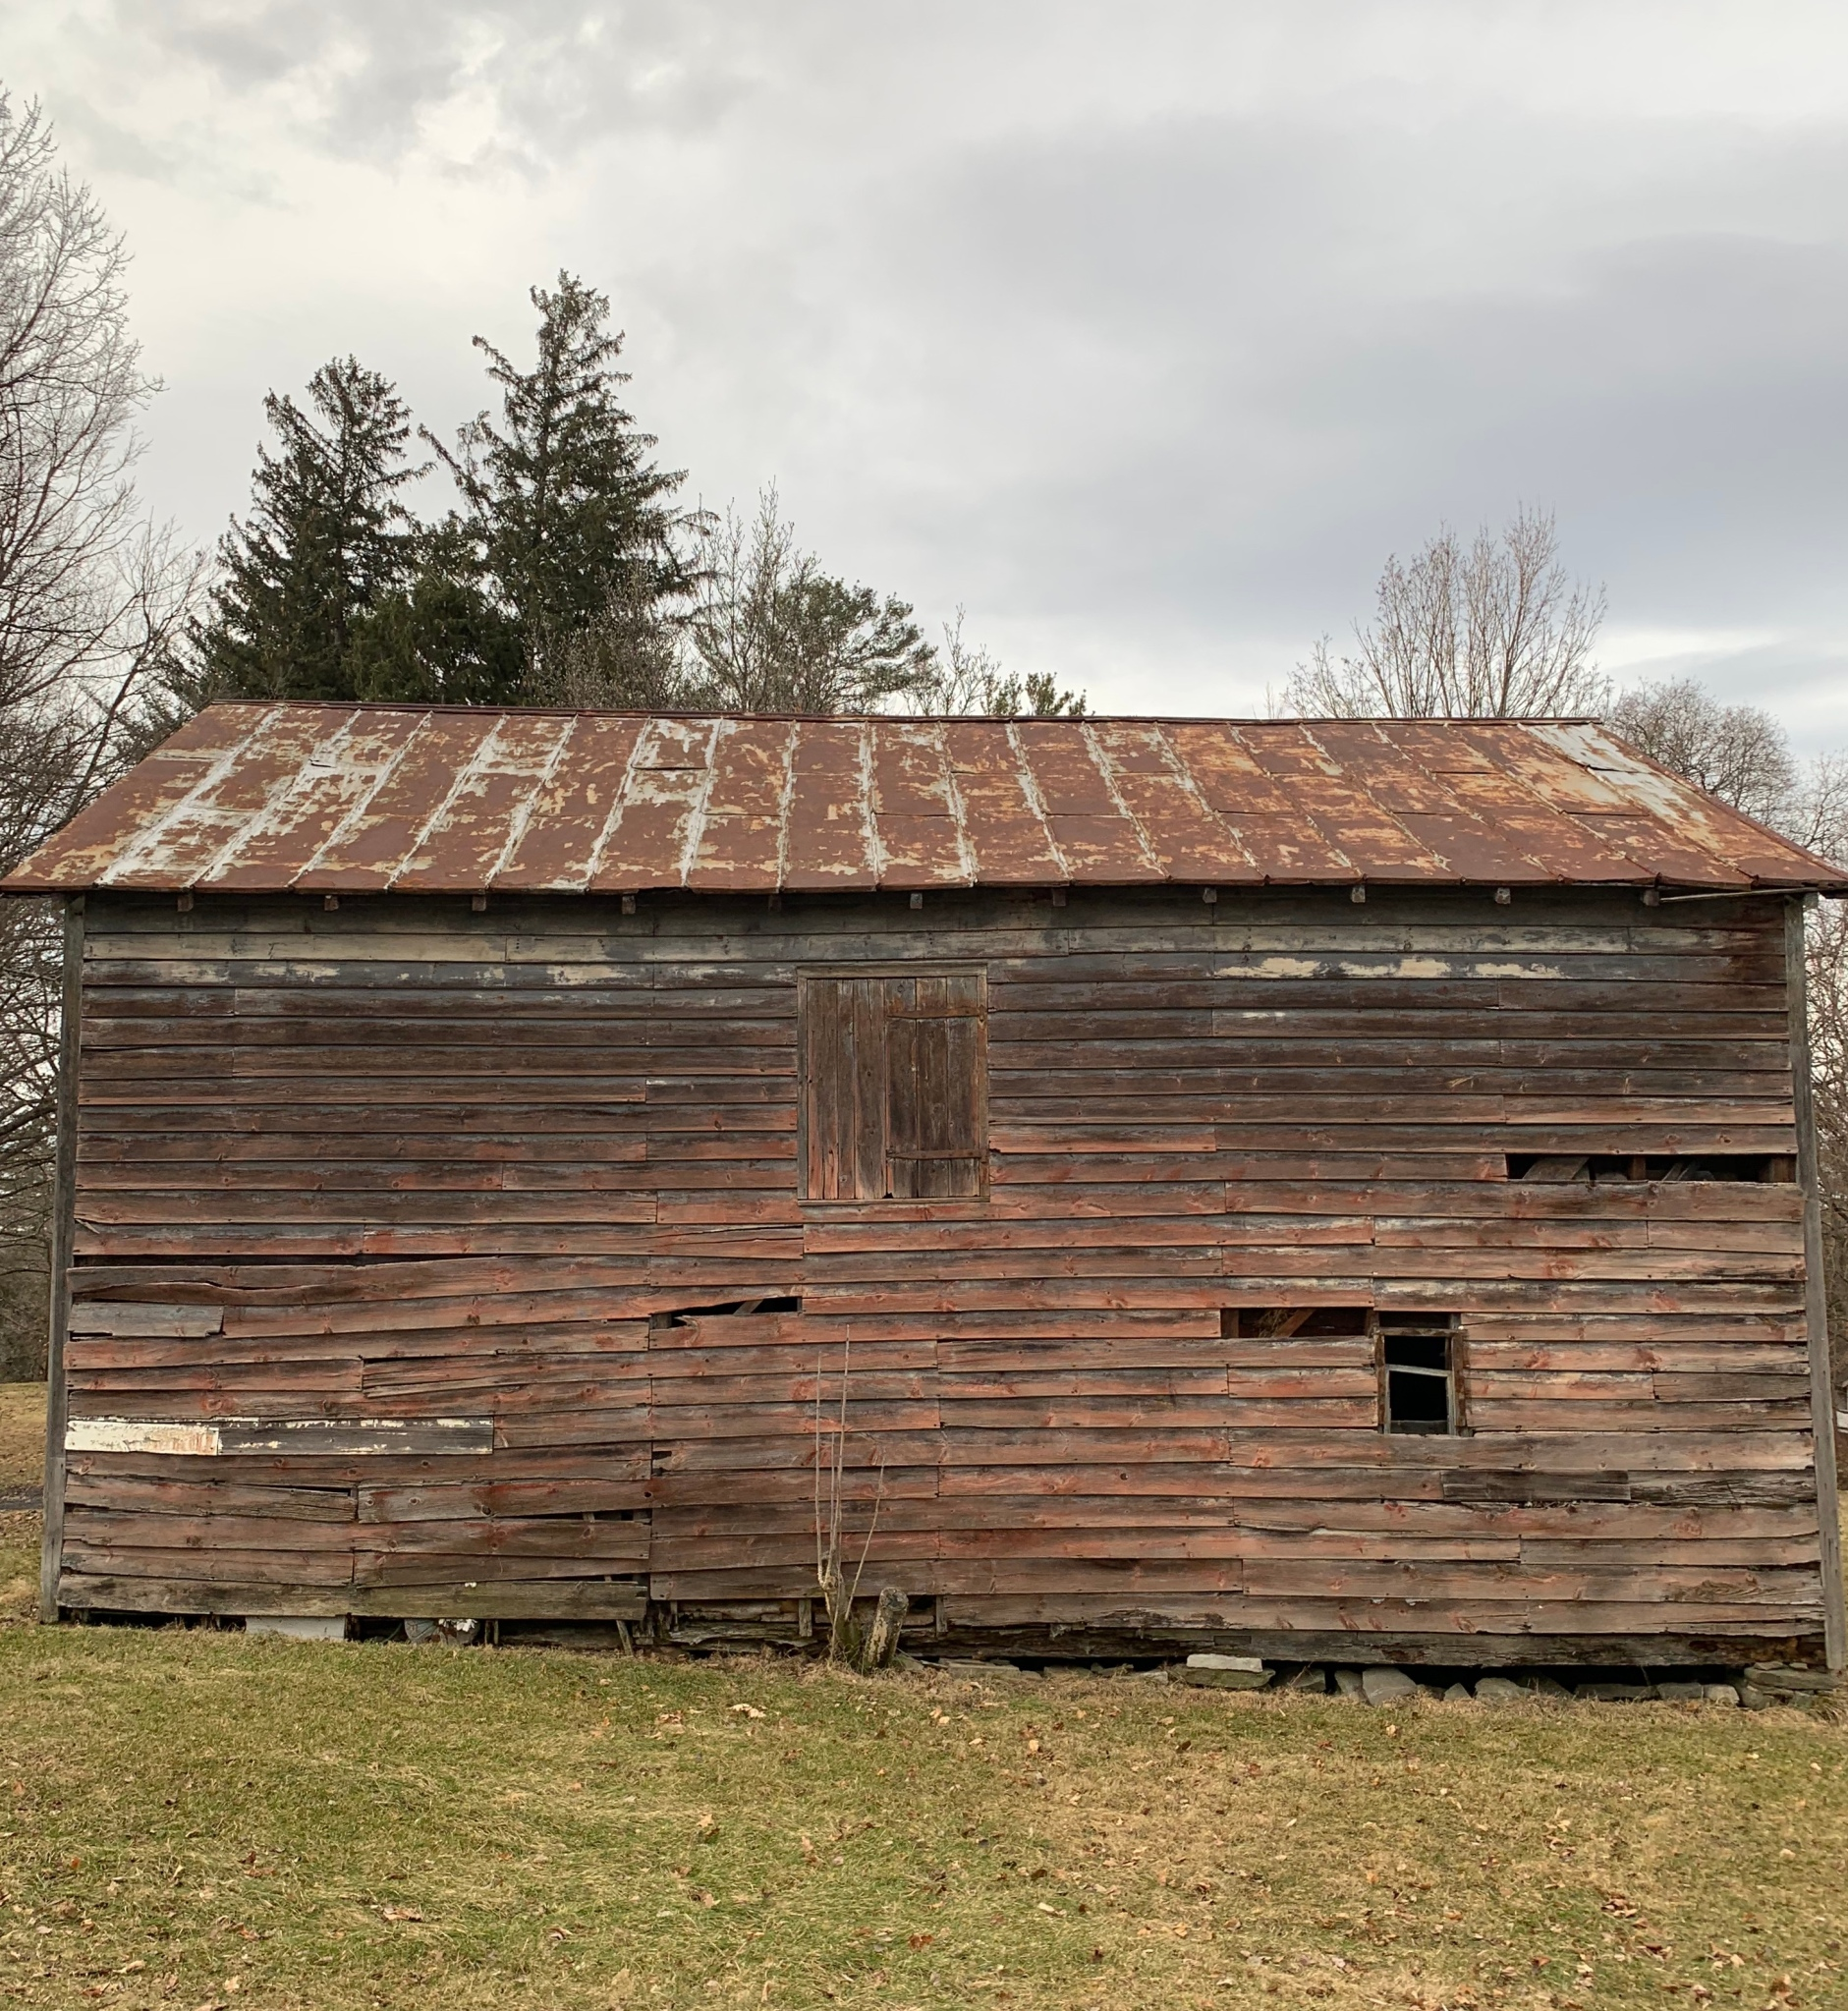 Old barn with rotting  wood siding